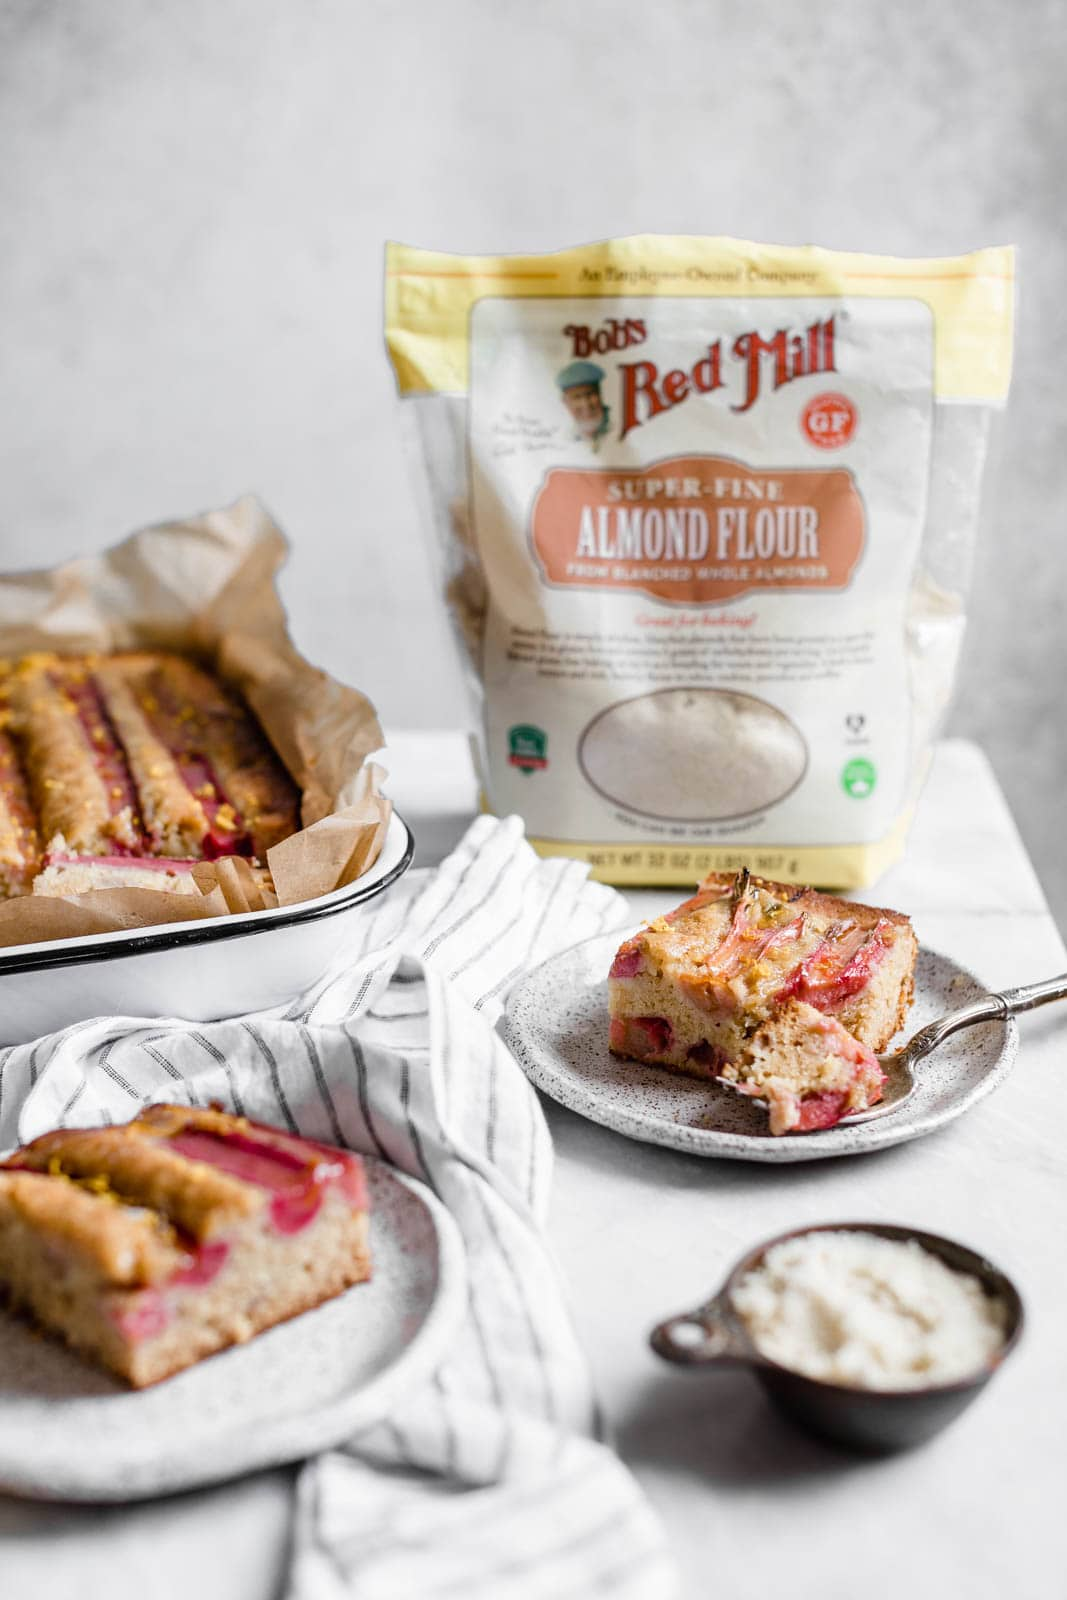 A rustic rhubarb almond honey cake with a hint of orange zest and wildflower honey. A perfect one-bowl snack cake ready in just 45 minutes!